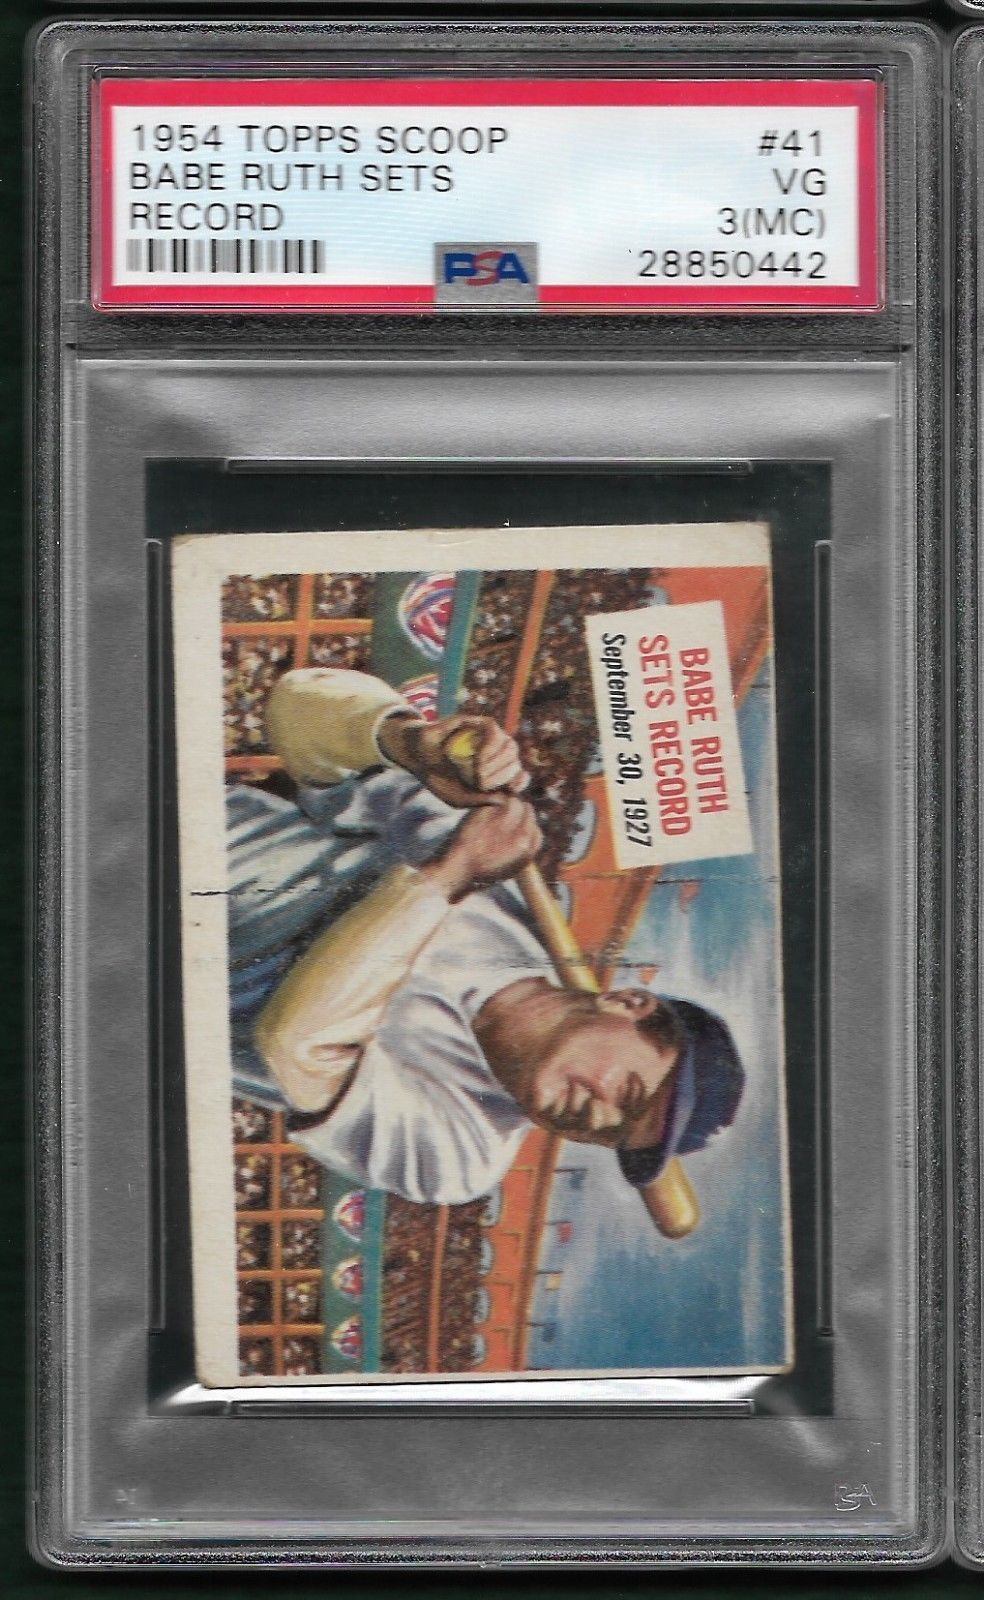 1954 topps scoop 41 babe ruth sets record psa 3 mc